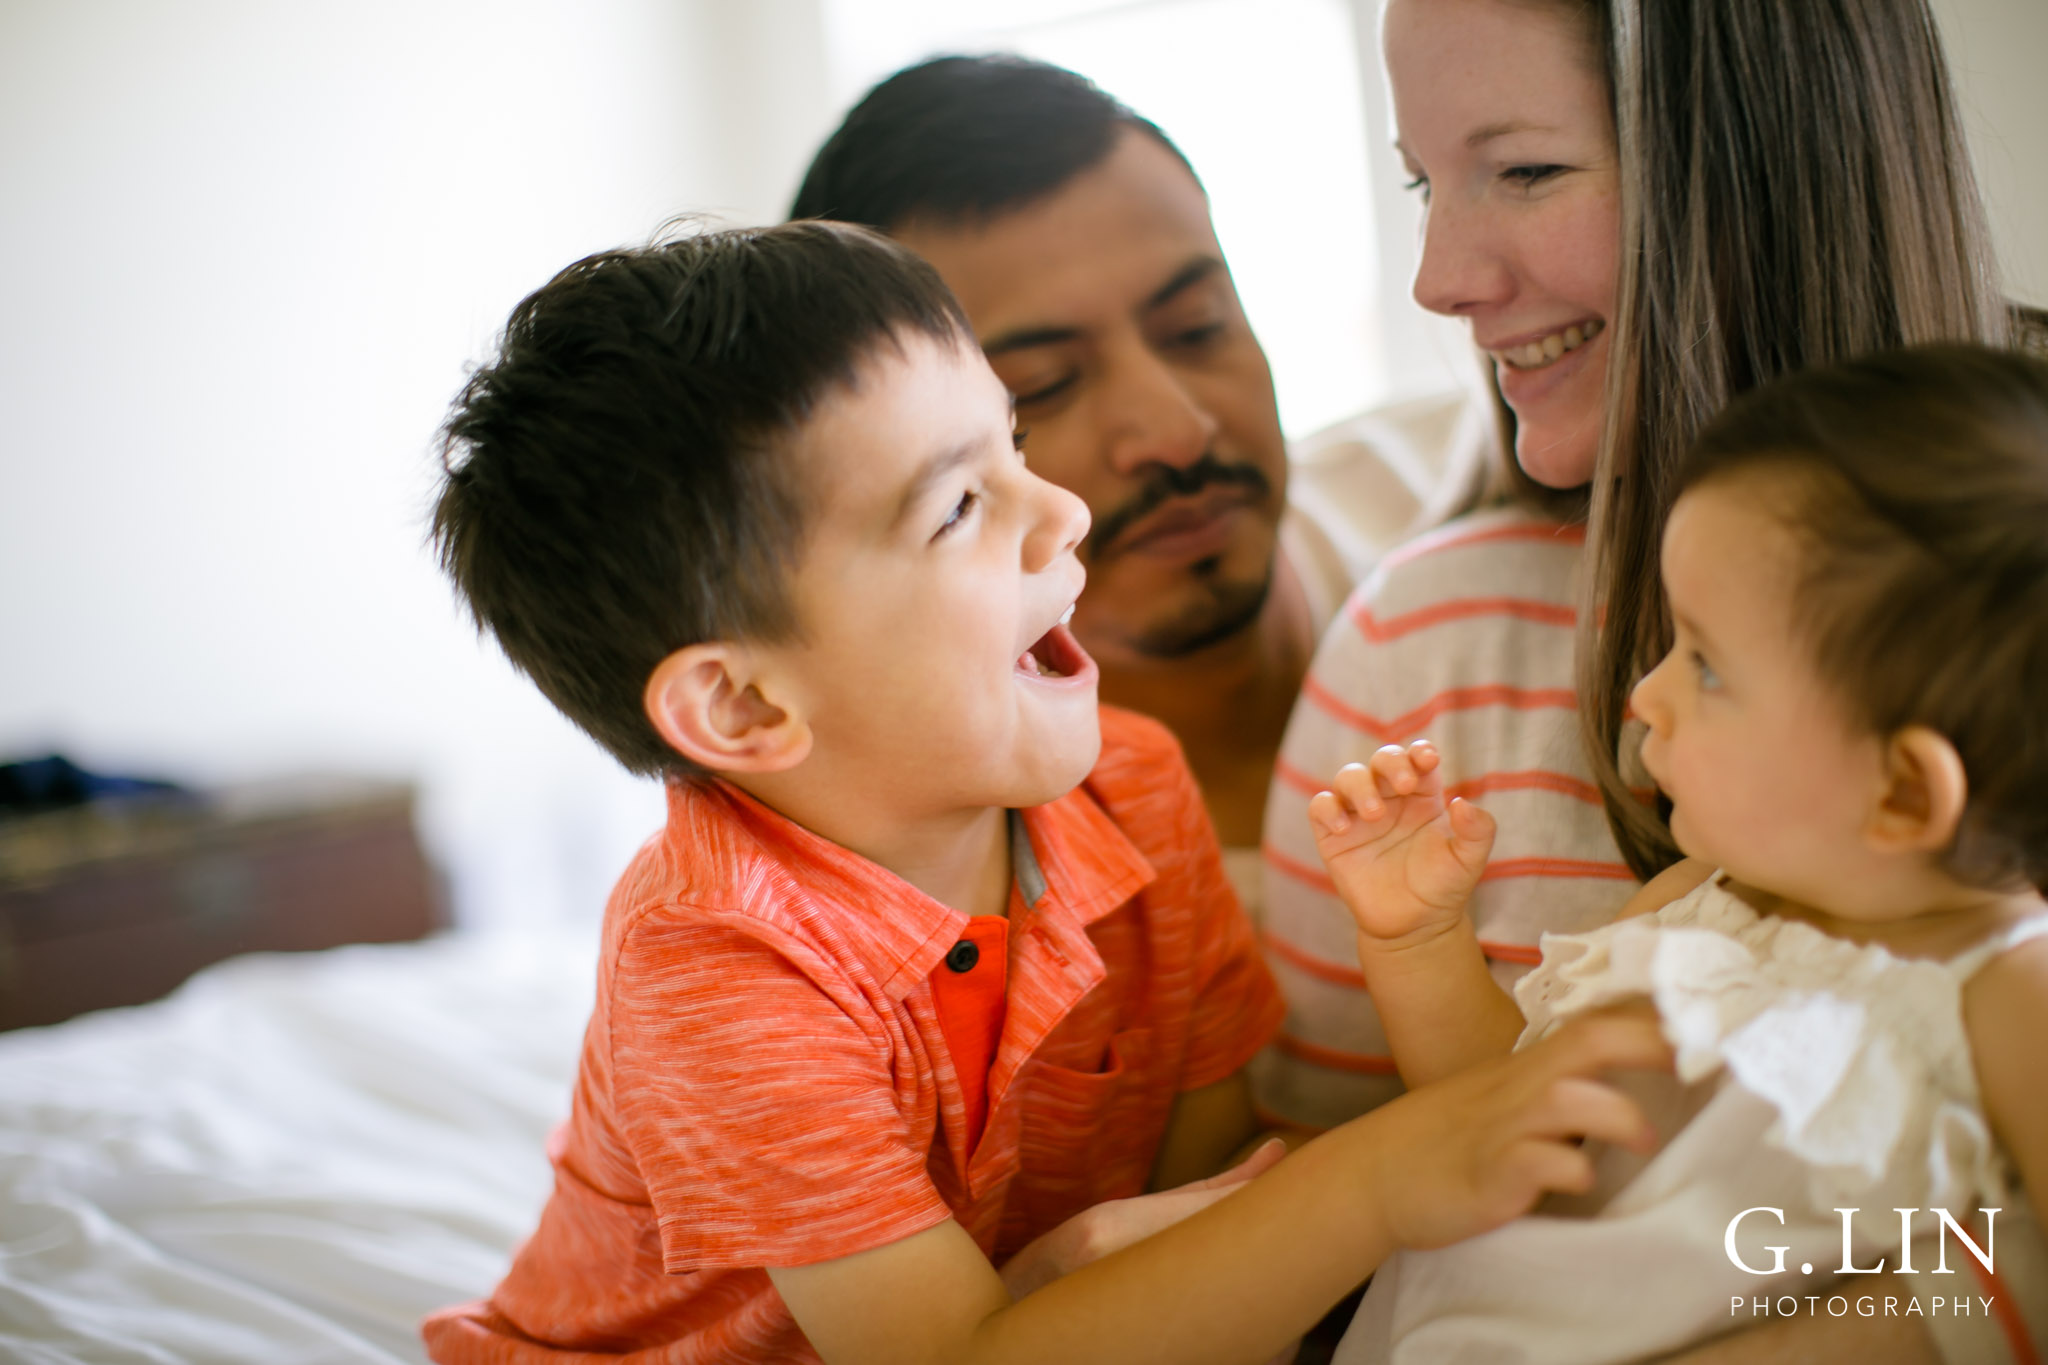 G. Lin Photography   Durham Family Photographer   Boy tickling little sister with family on bed